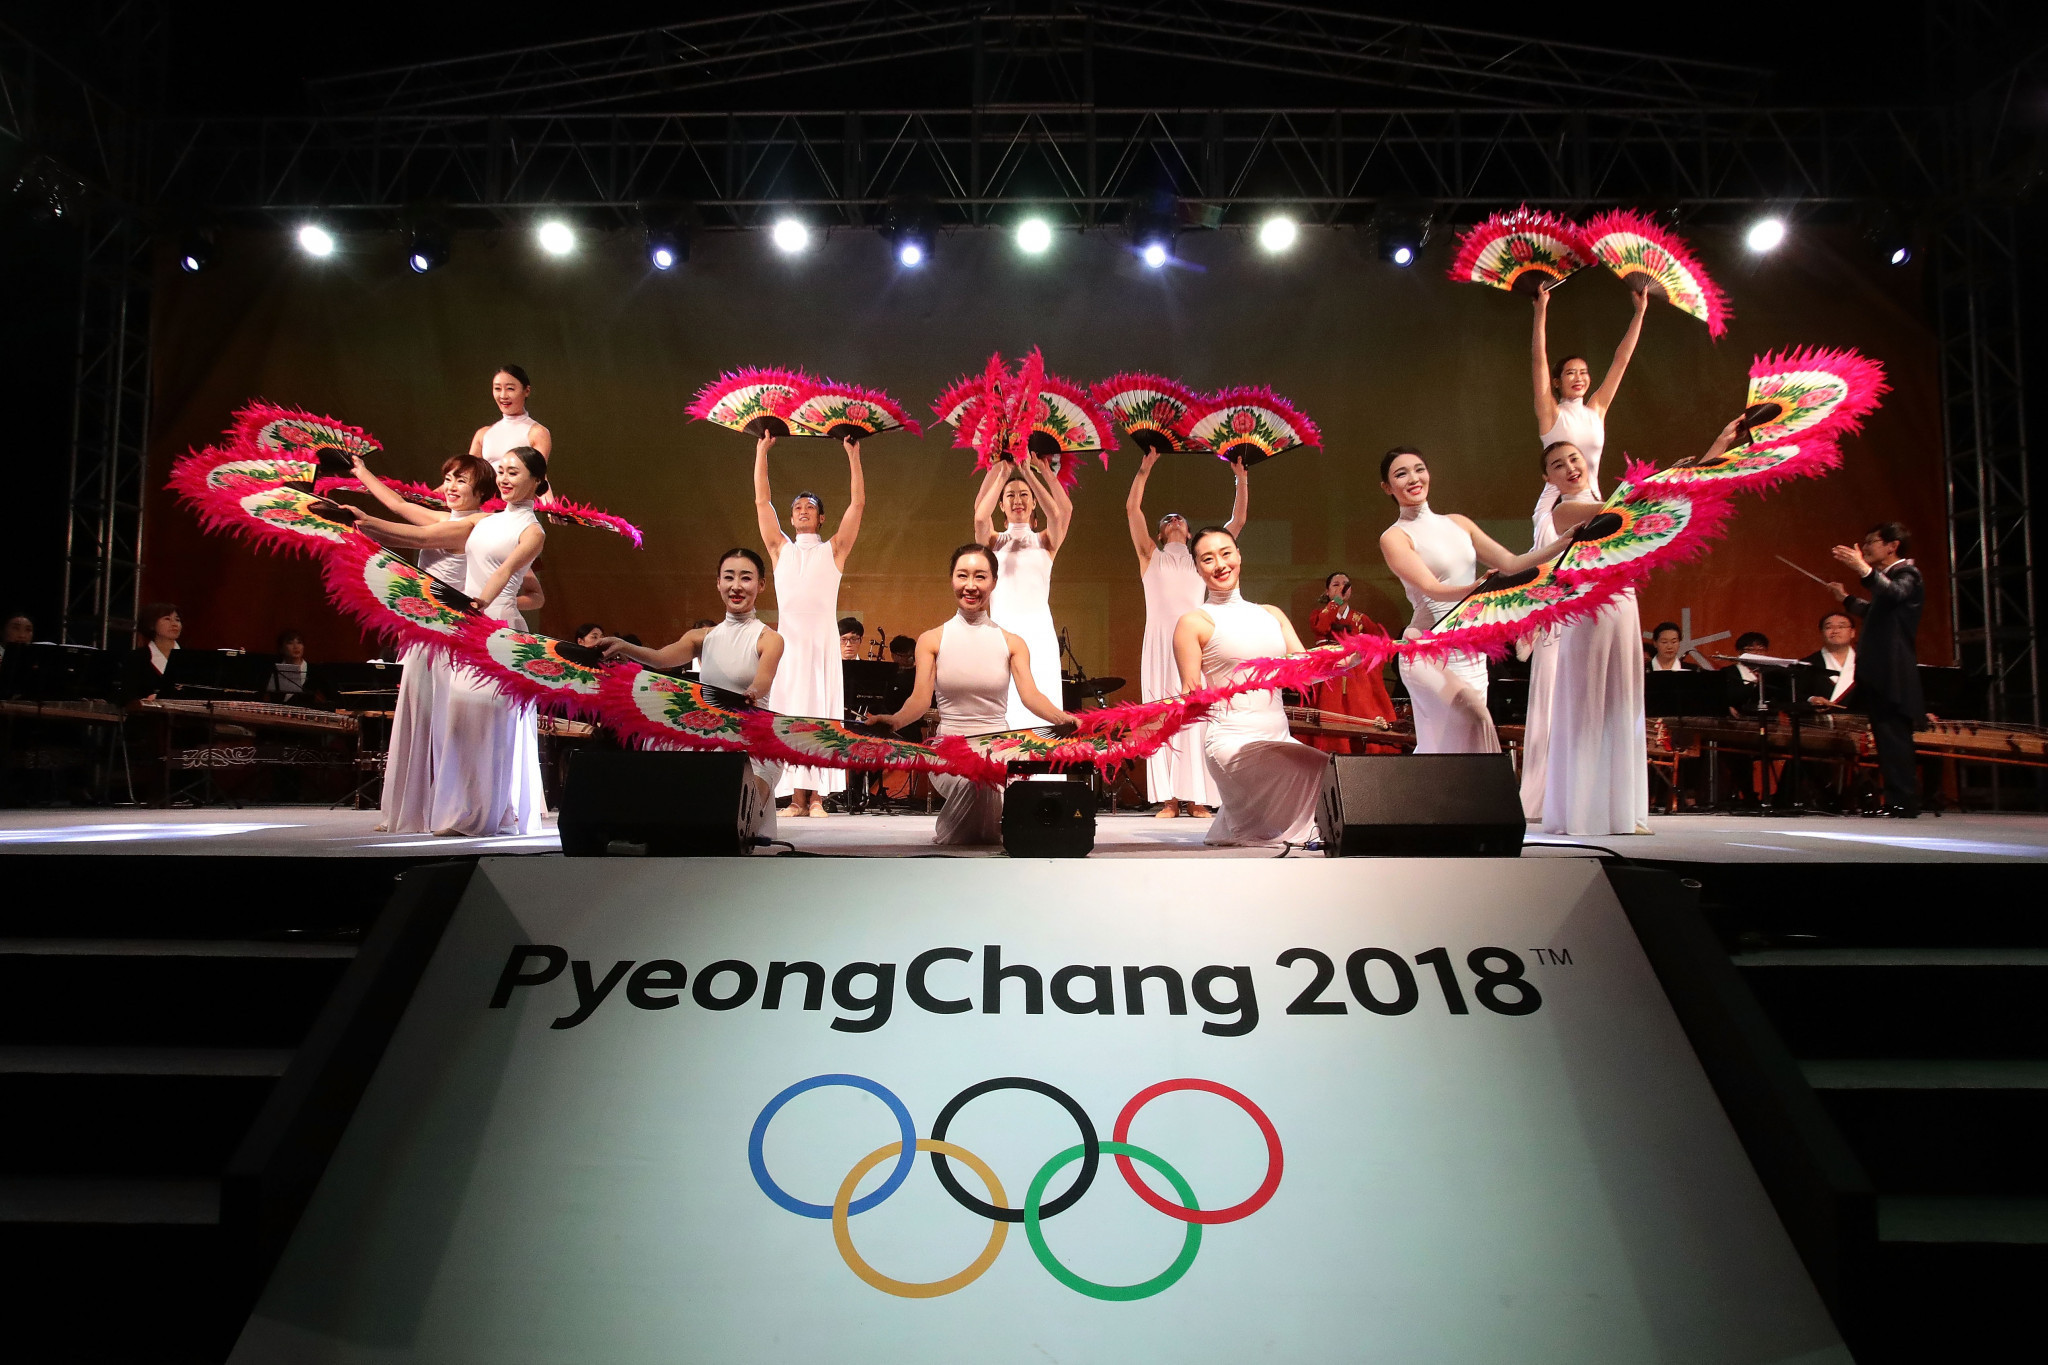 The ongoing security tensions in the Korean Peninsula, associated with North Korea's missile launches, are thought to have hindered ticket sales for Pyeongchang 2018  ©Getty Images